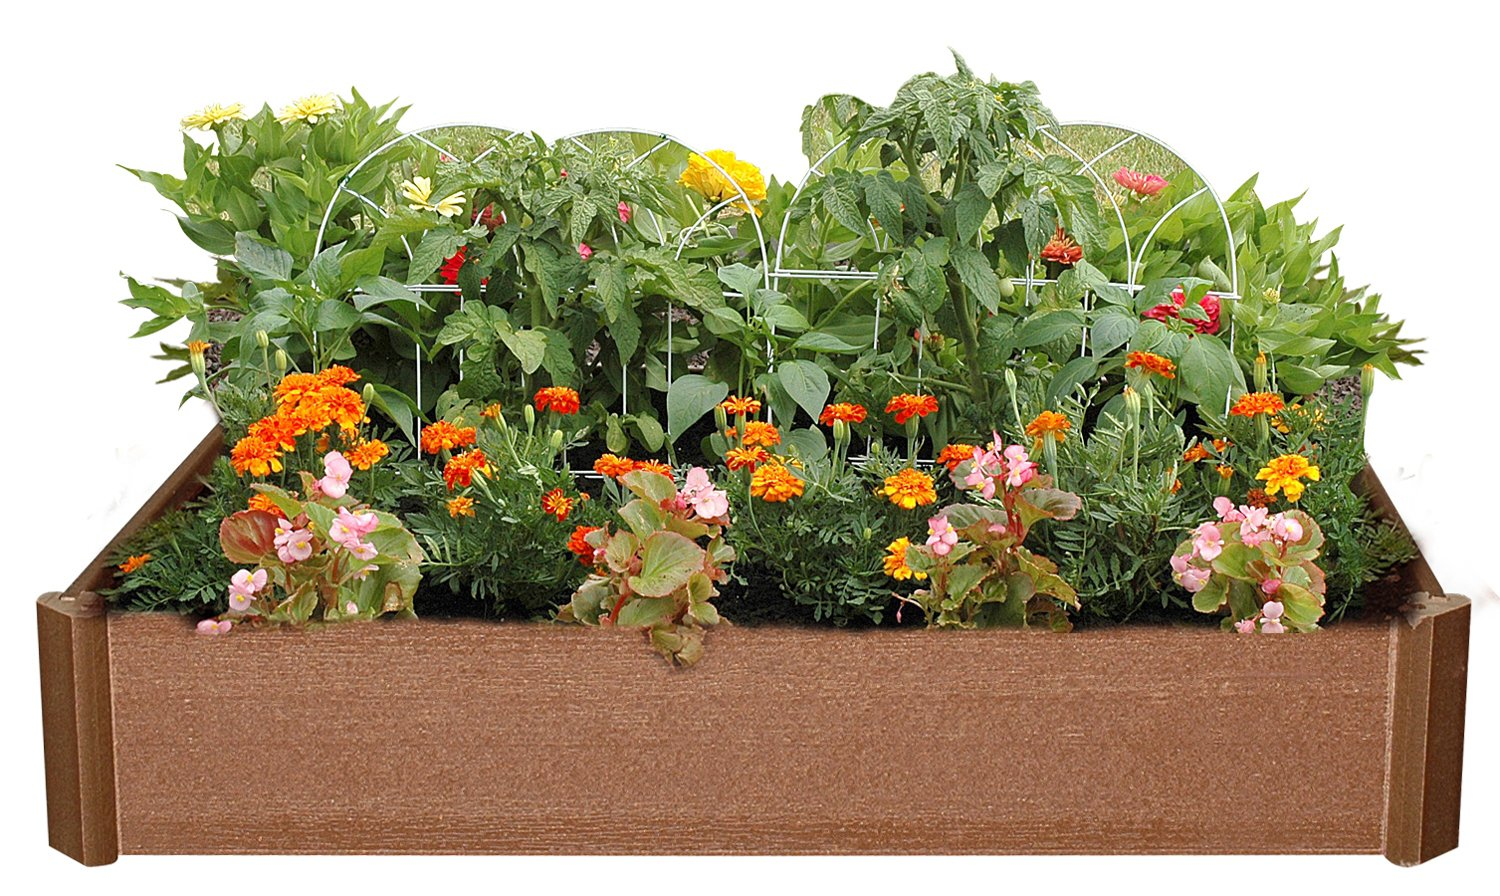 amazoncom greenland gardener 6 inch raised bed garden kit patio lawn garden